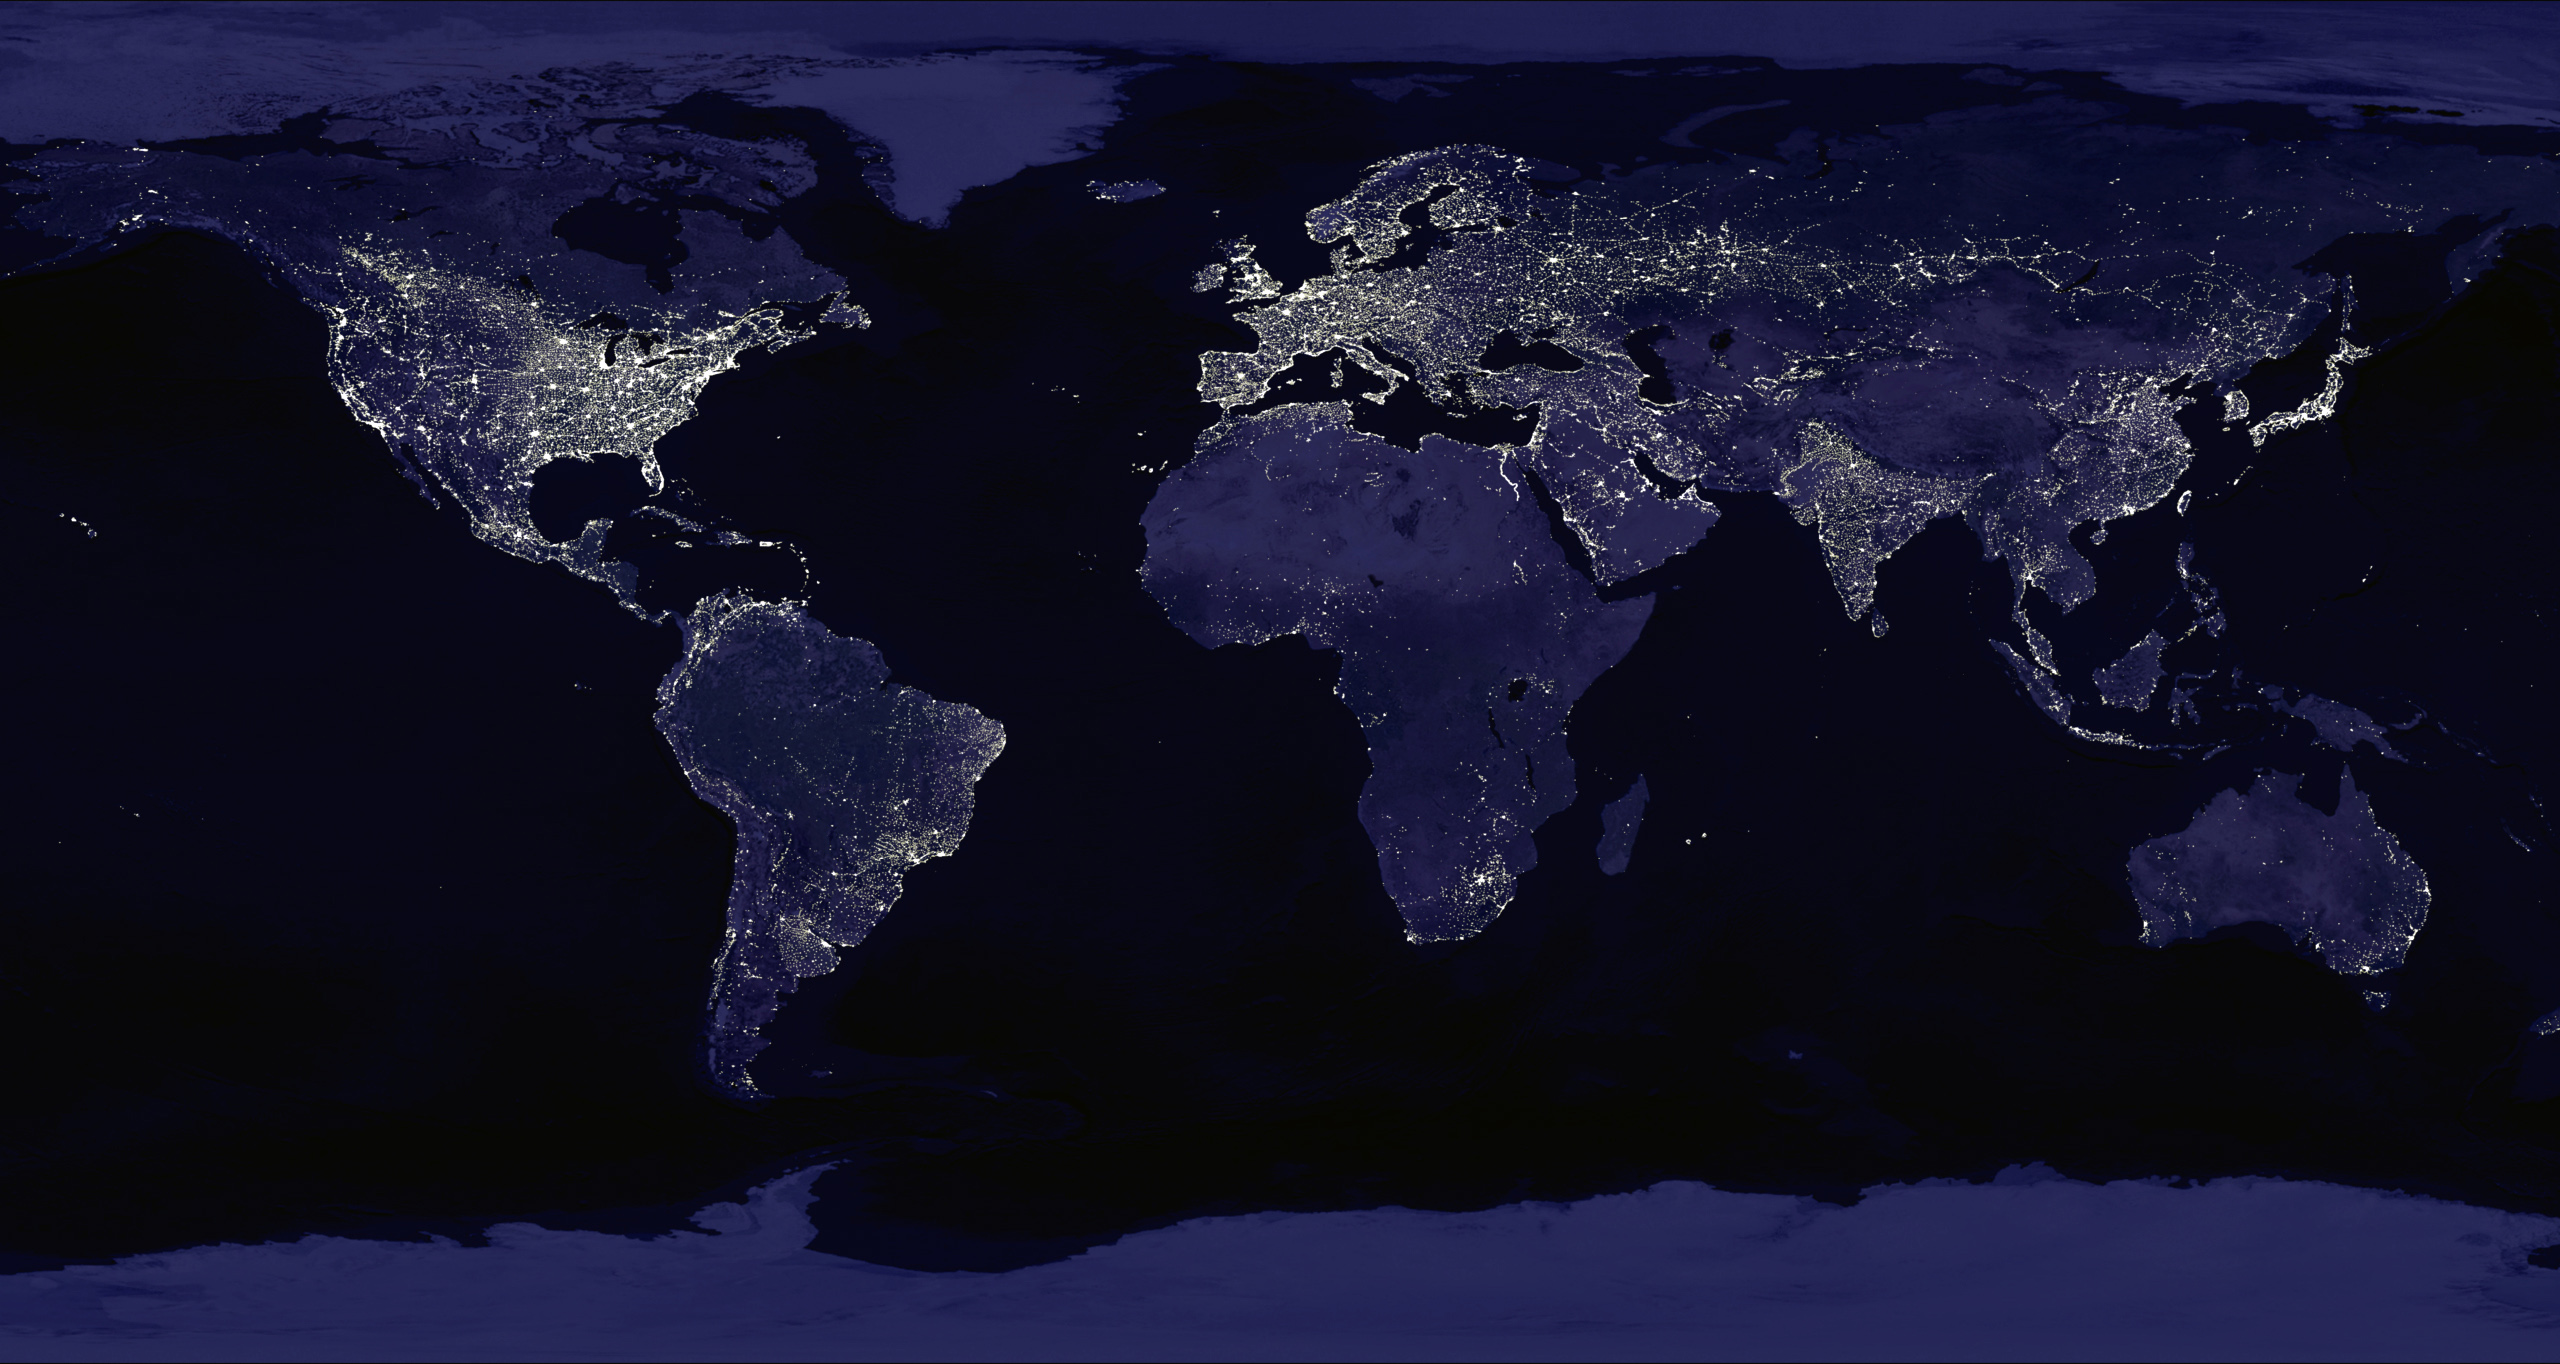 Large Map Of Earth At Night World Mapsland Maps Of The World - Large map of earth